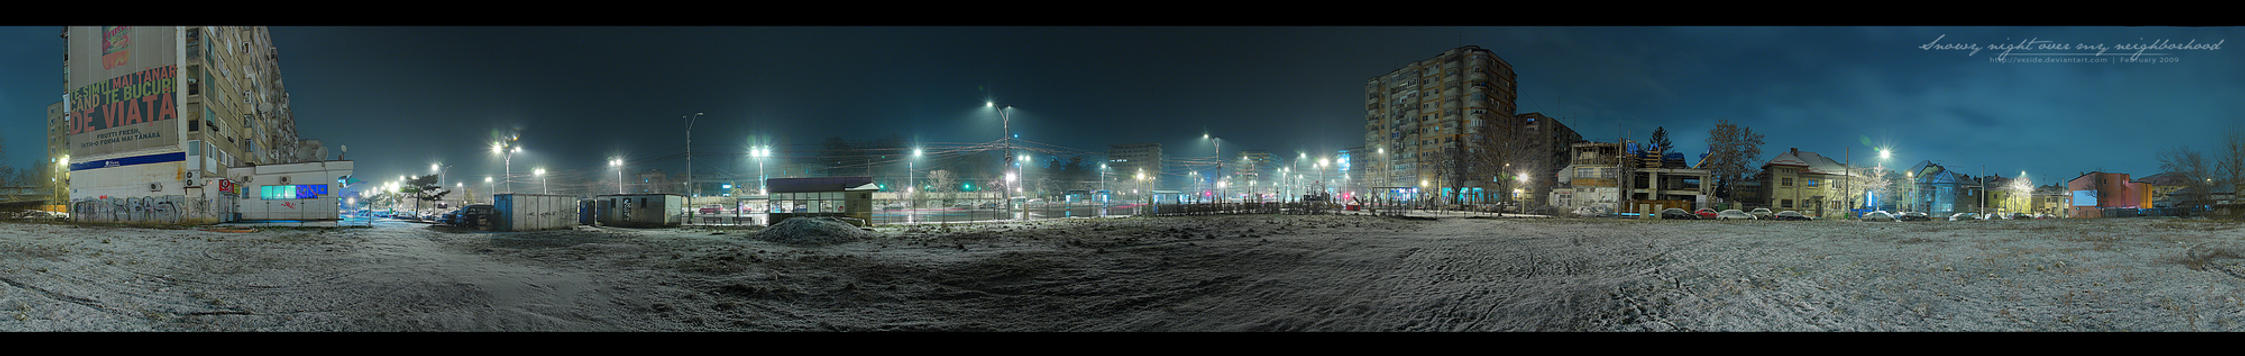 Snowy night - 360 Pano RAW by vxside